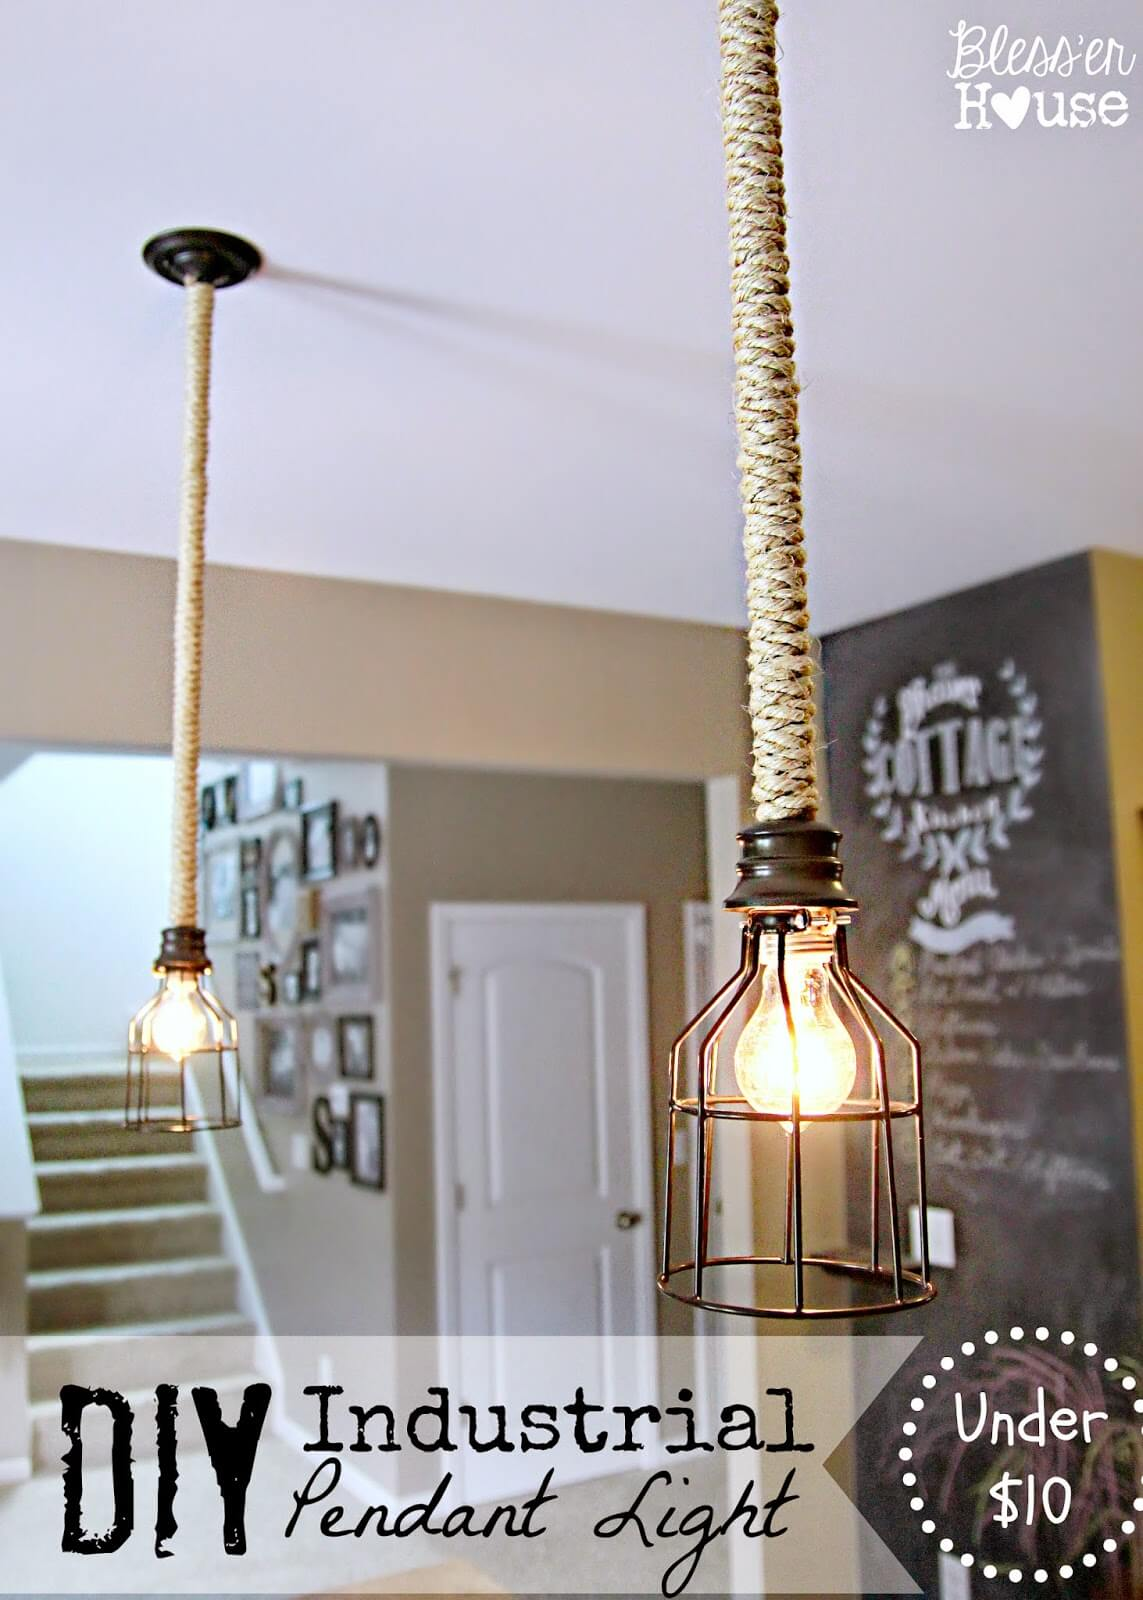 Pendant Lights with Woven Rope Supports